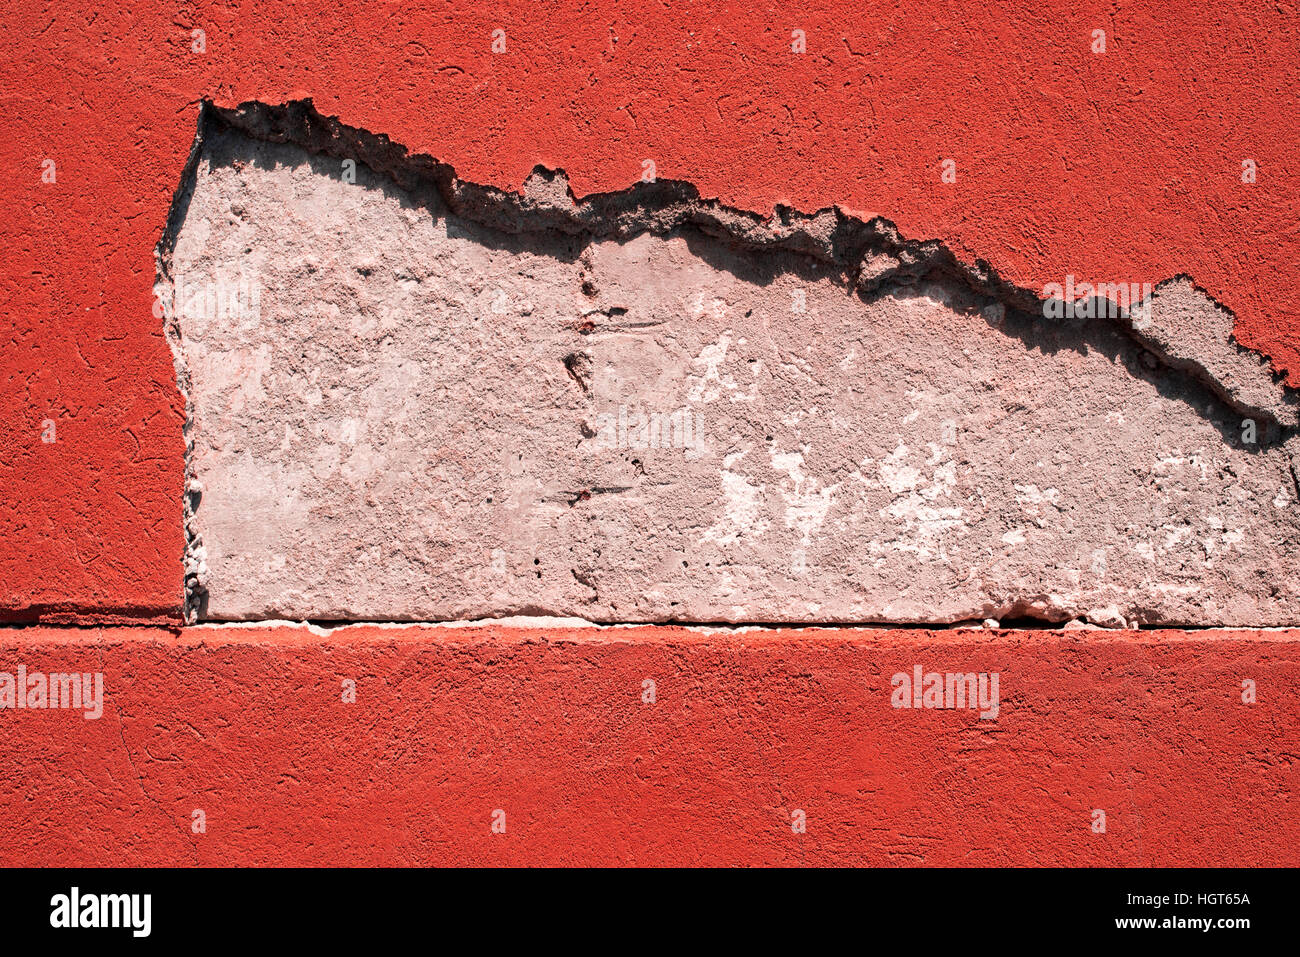 Cracked cement wall texture close-up for design or as background - Stock Image